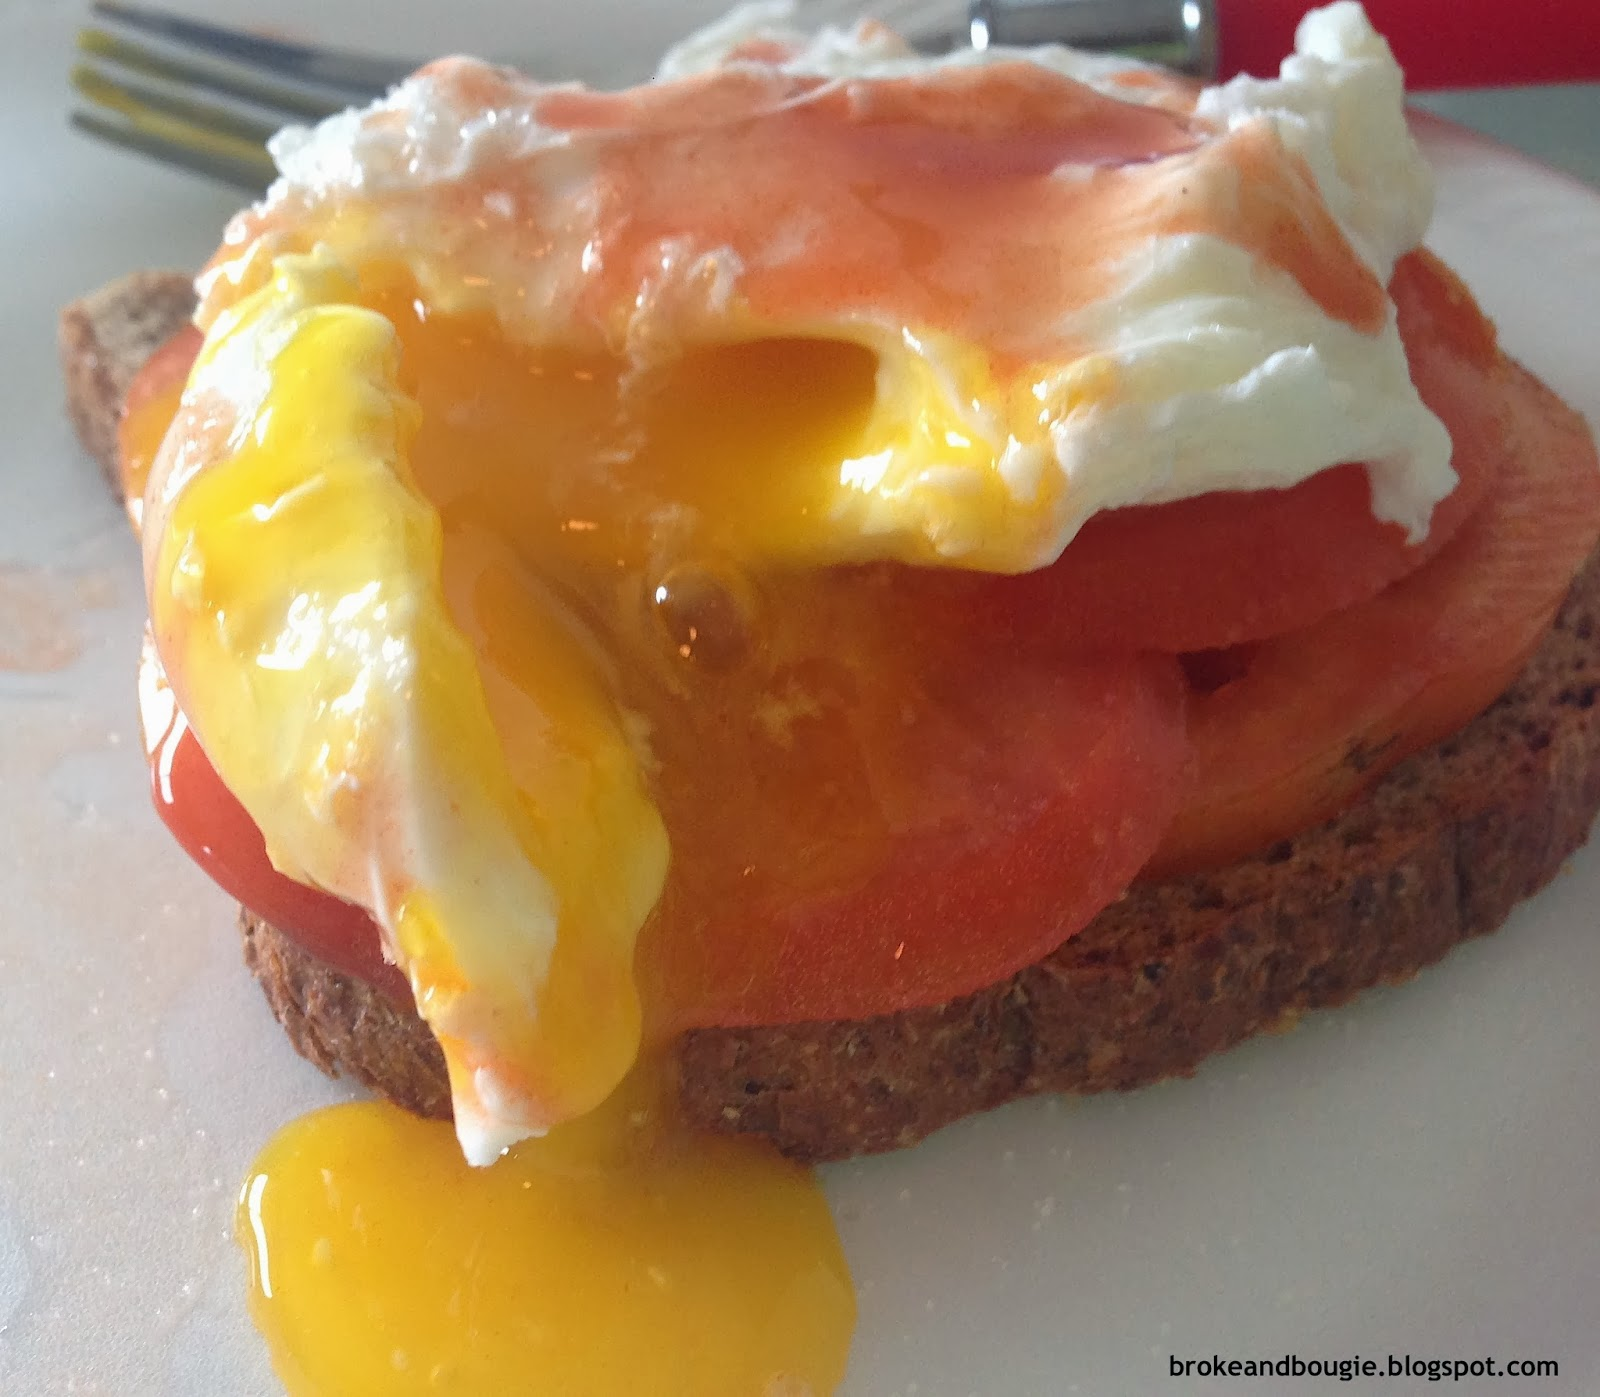 Broke and Bougie: The Perfect Poached Eggs